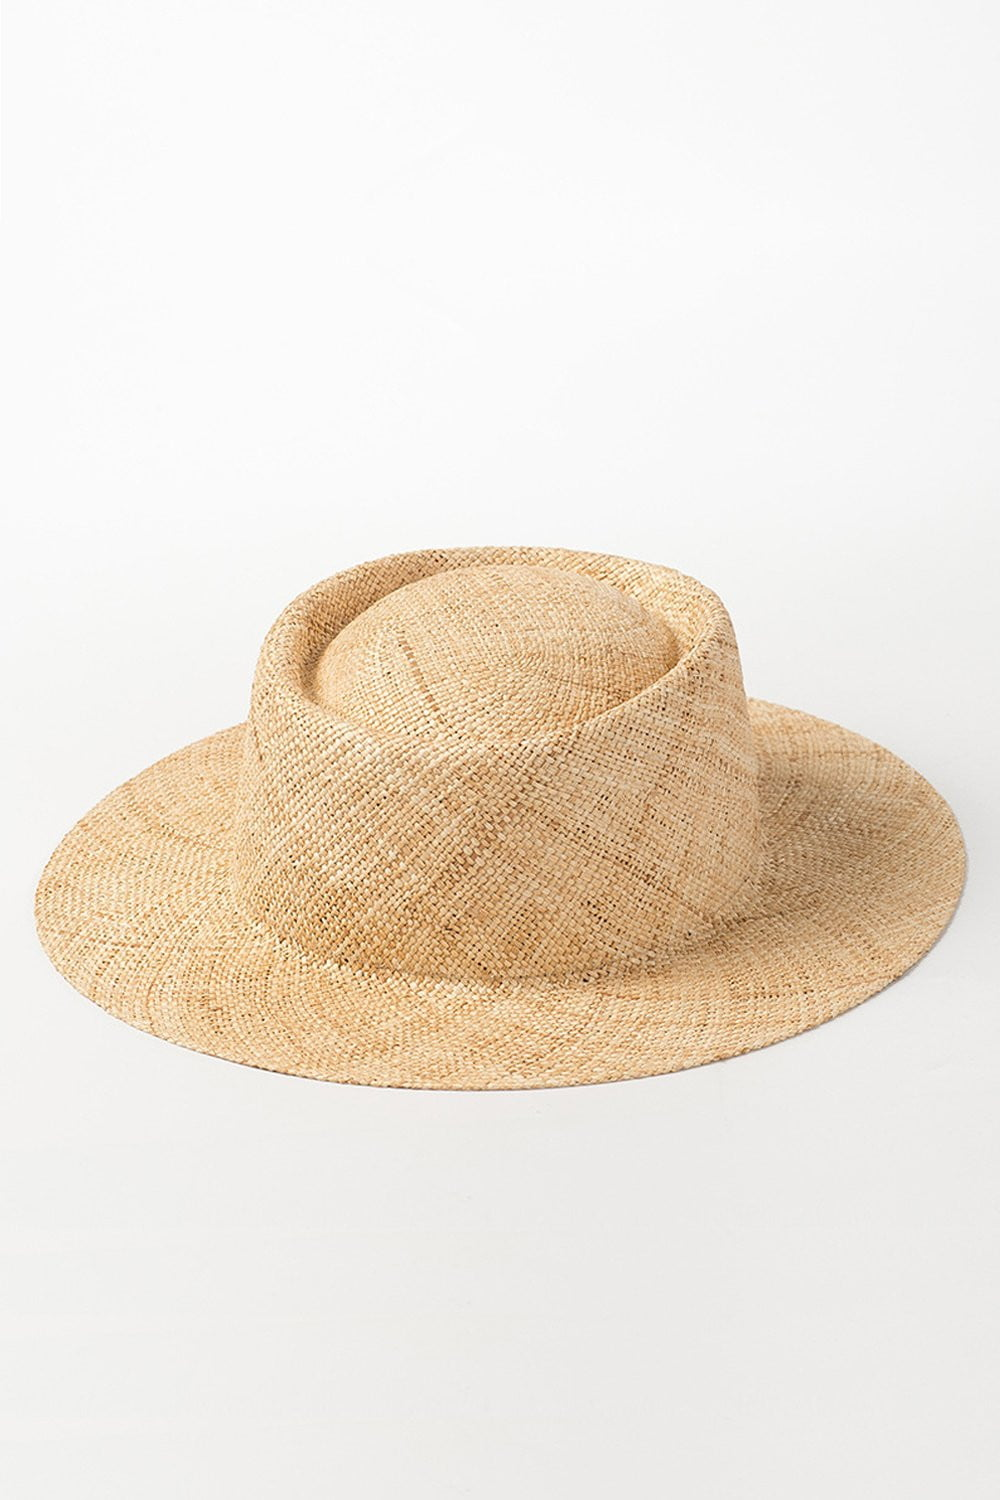 Bao Straw Boster Hat